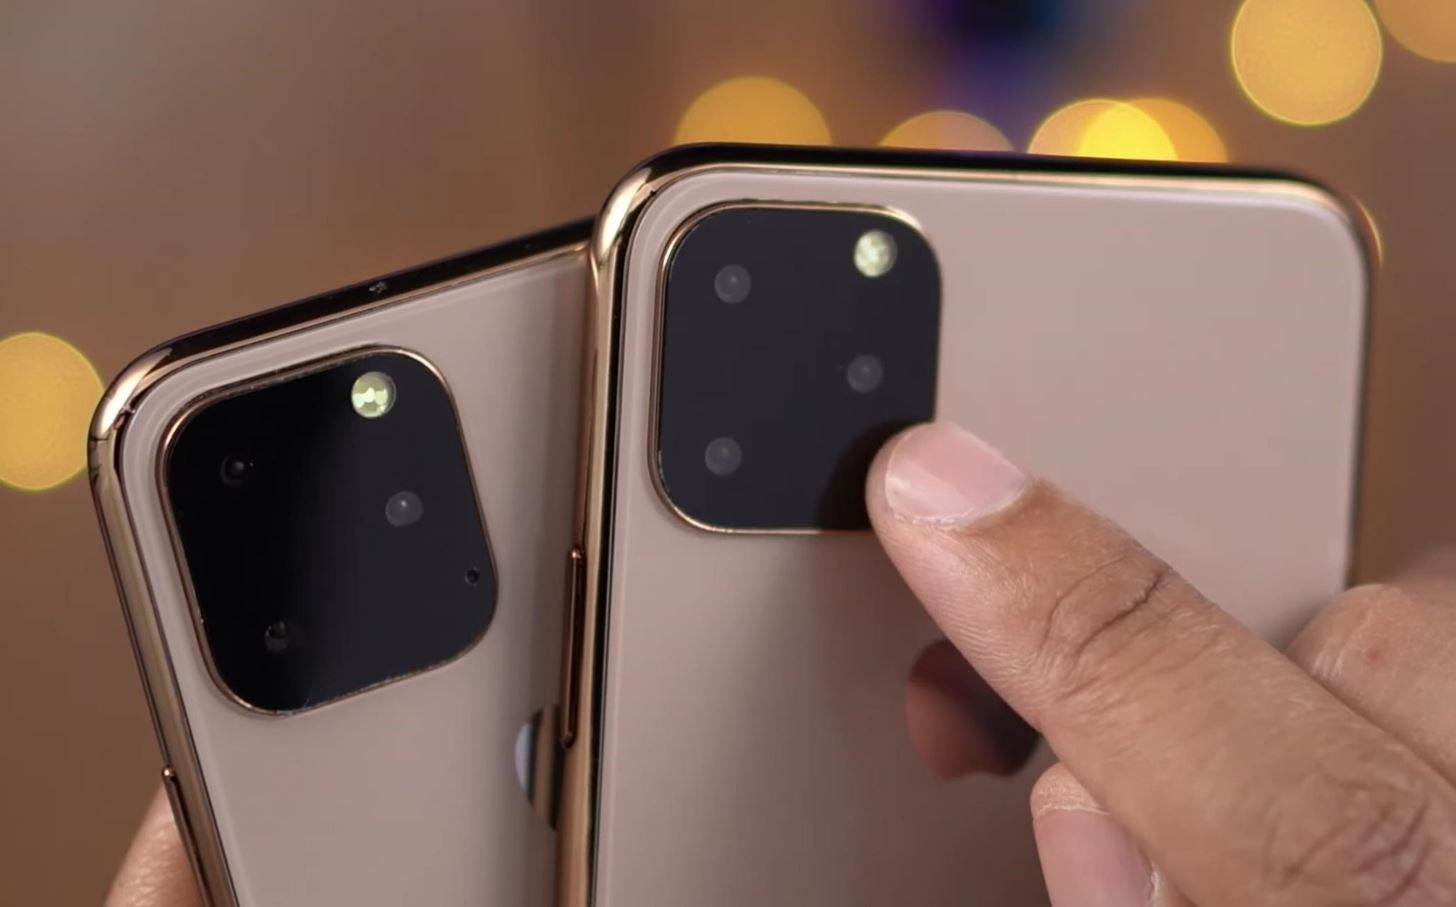 2019 iPhone Rumors: Everything We Know About the iPhone 11 Pro & 11 Pro Max So Far